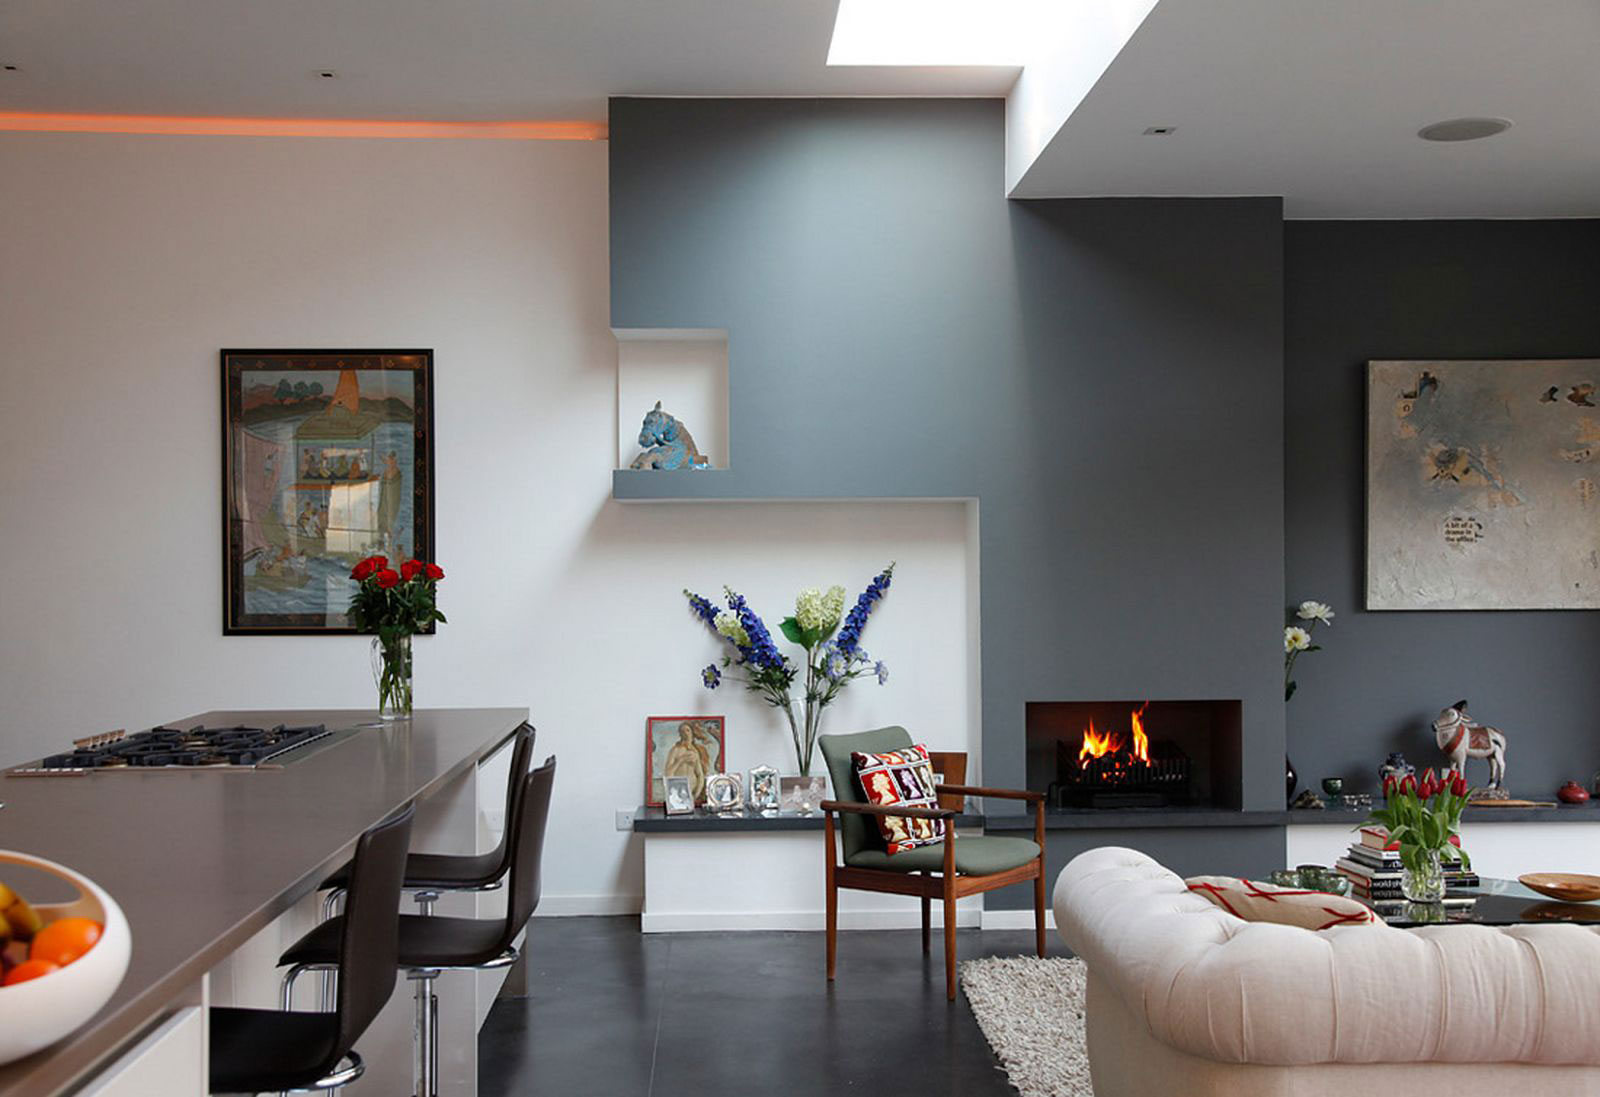 Living-and-dining room interior design-3 examples of living room and dining room interior design to check out